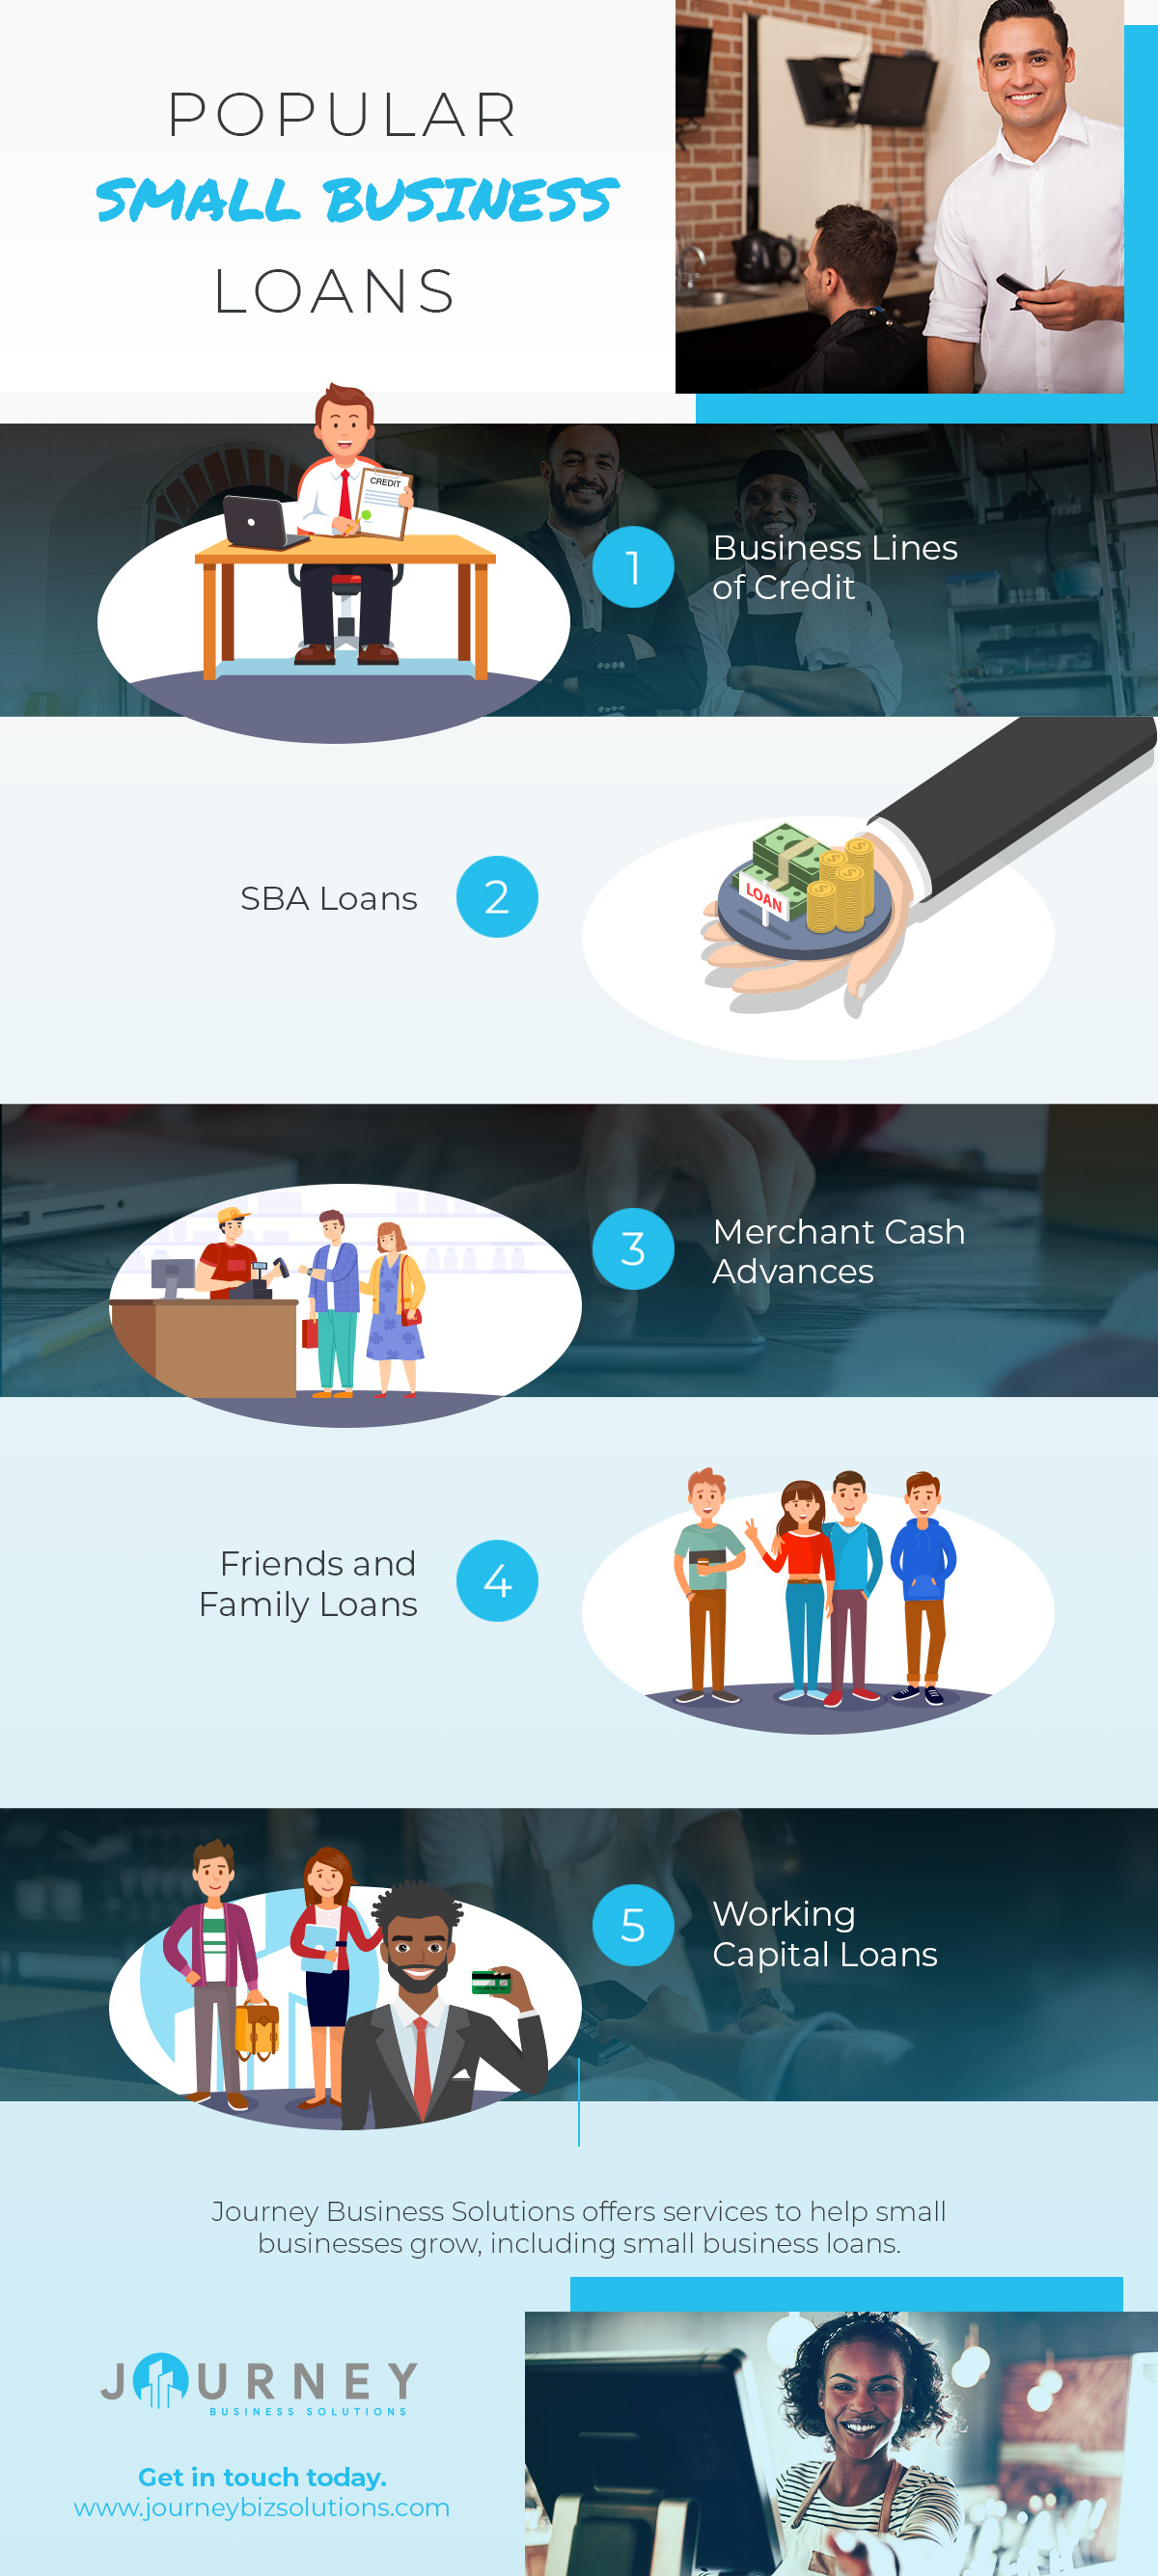 Popular Small Business Loans Infographic